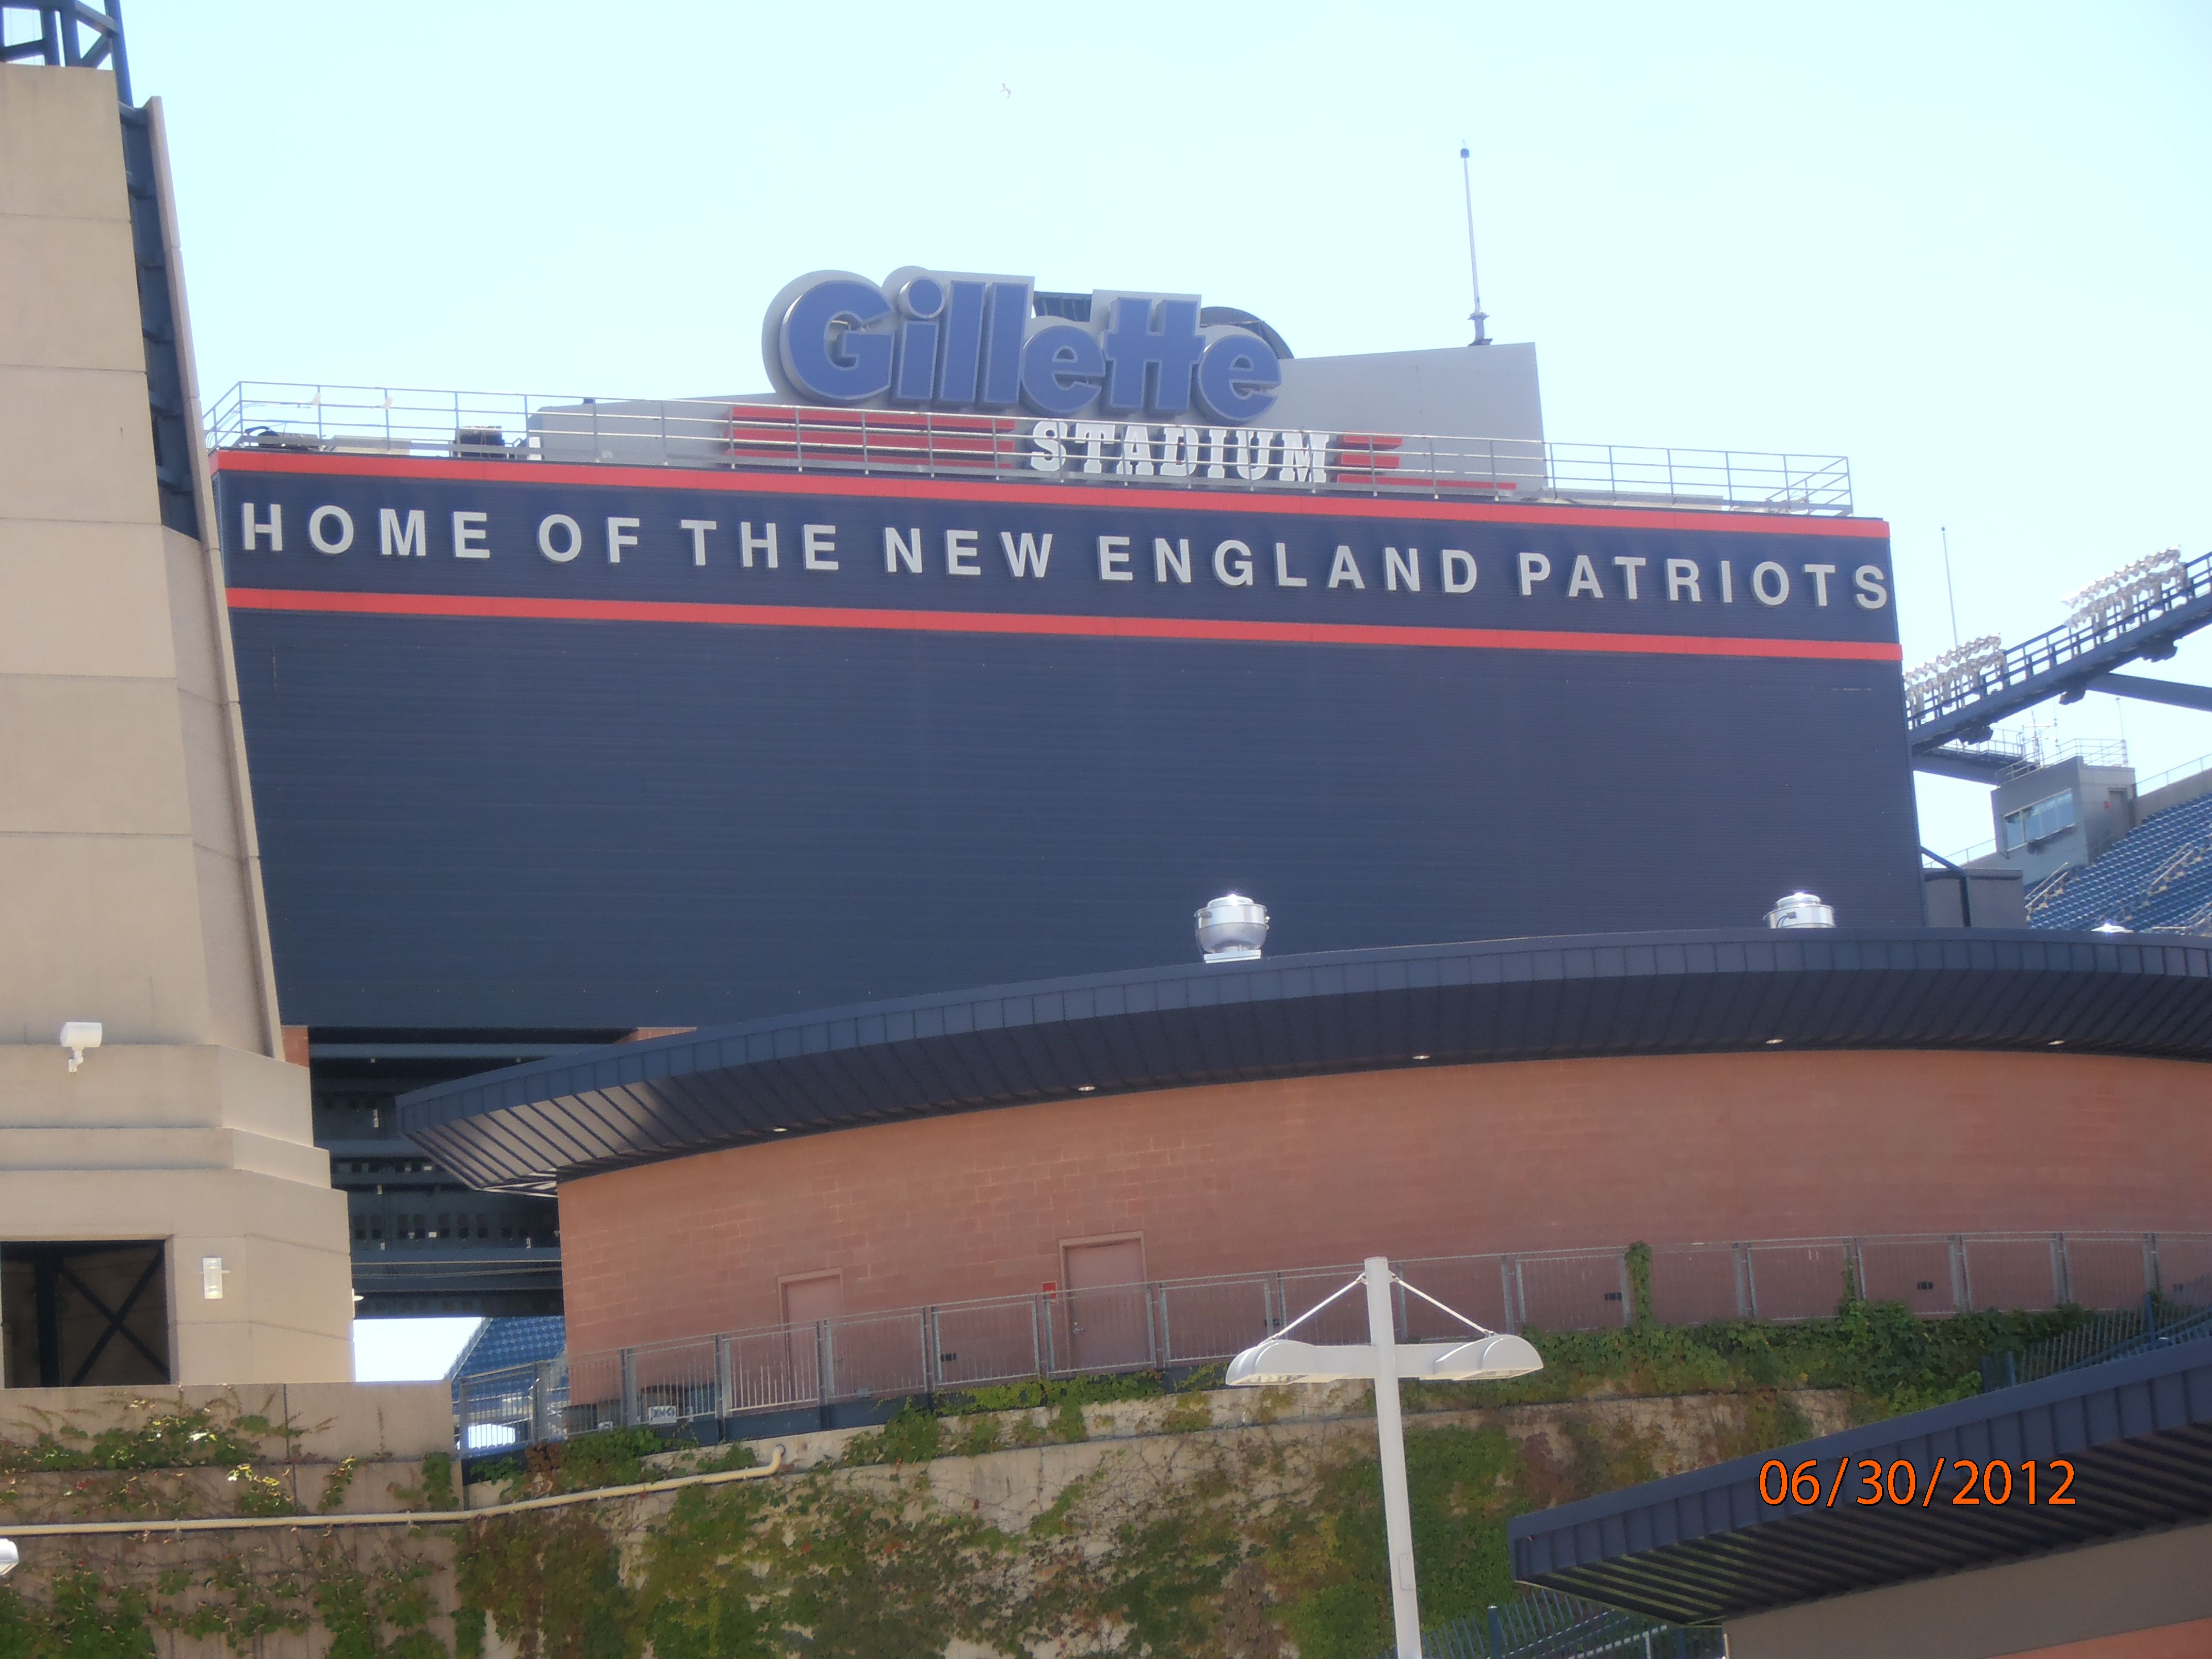 Home of the New England Patriots ...